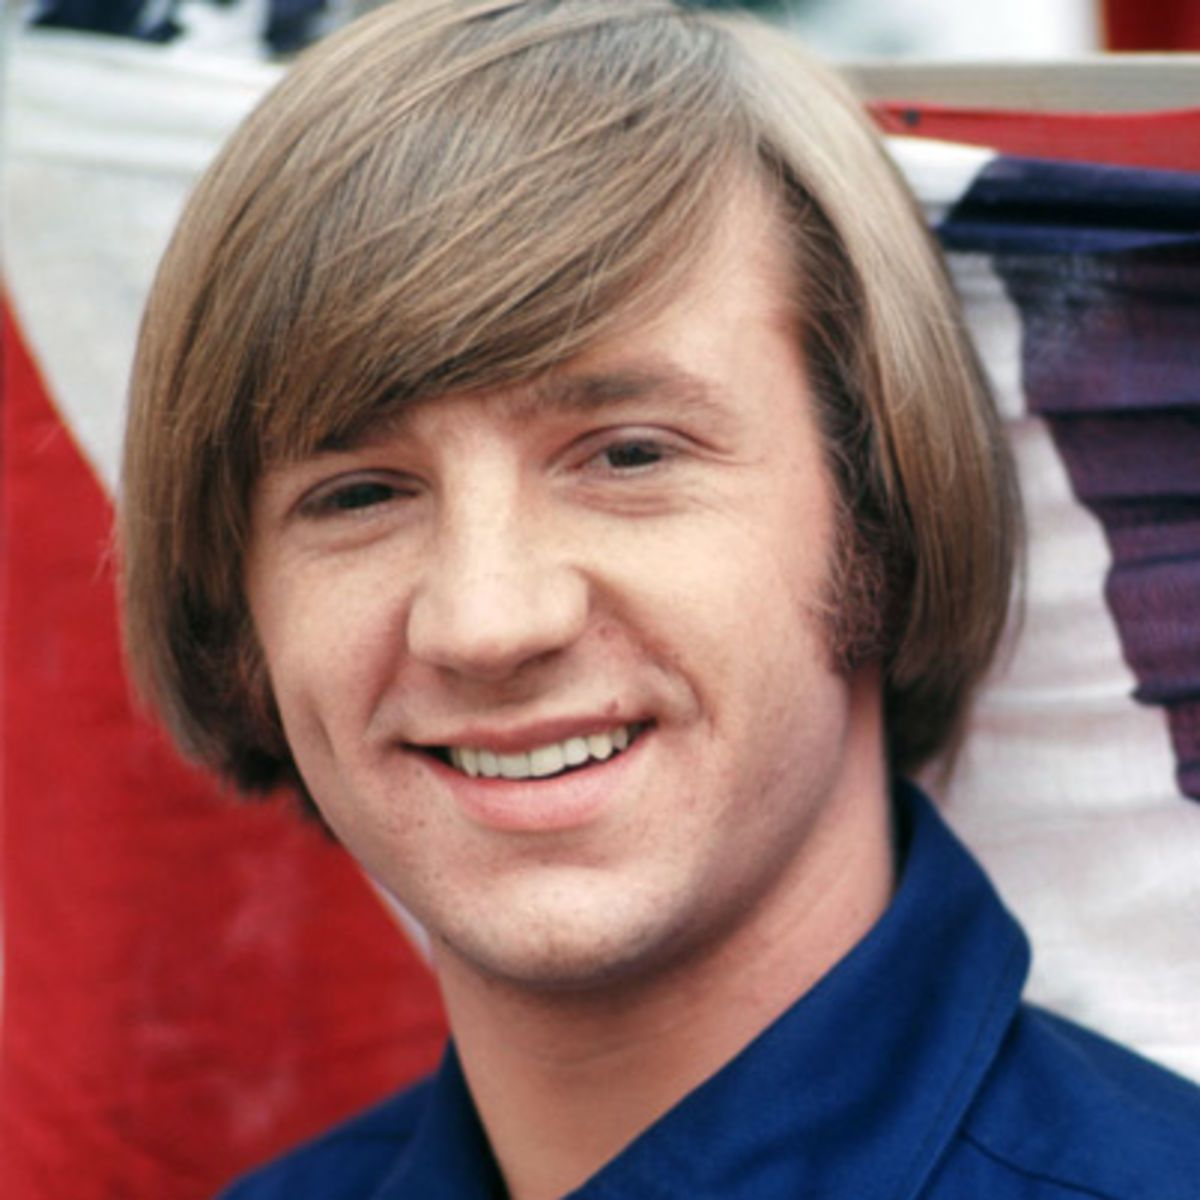 peter tork agepeter tork net worth, peter tork birthday, peter tork age, peter tork 2017, peter tork songs, peter tork images, peter tork imdb, peter tork dead, peter tork height, peter tork tour 2017, peter tork hand tattoo, peter tork bass, peter tork young, peter tork married, peter tork family, peter tork king of queens, peter tork mother, peter tork photos, peter tork band, peter tork twitter